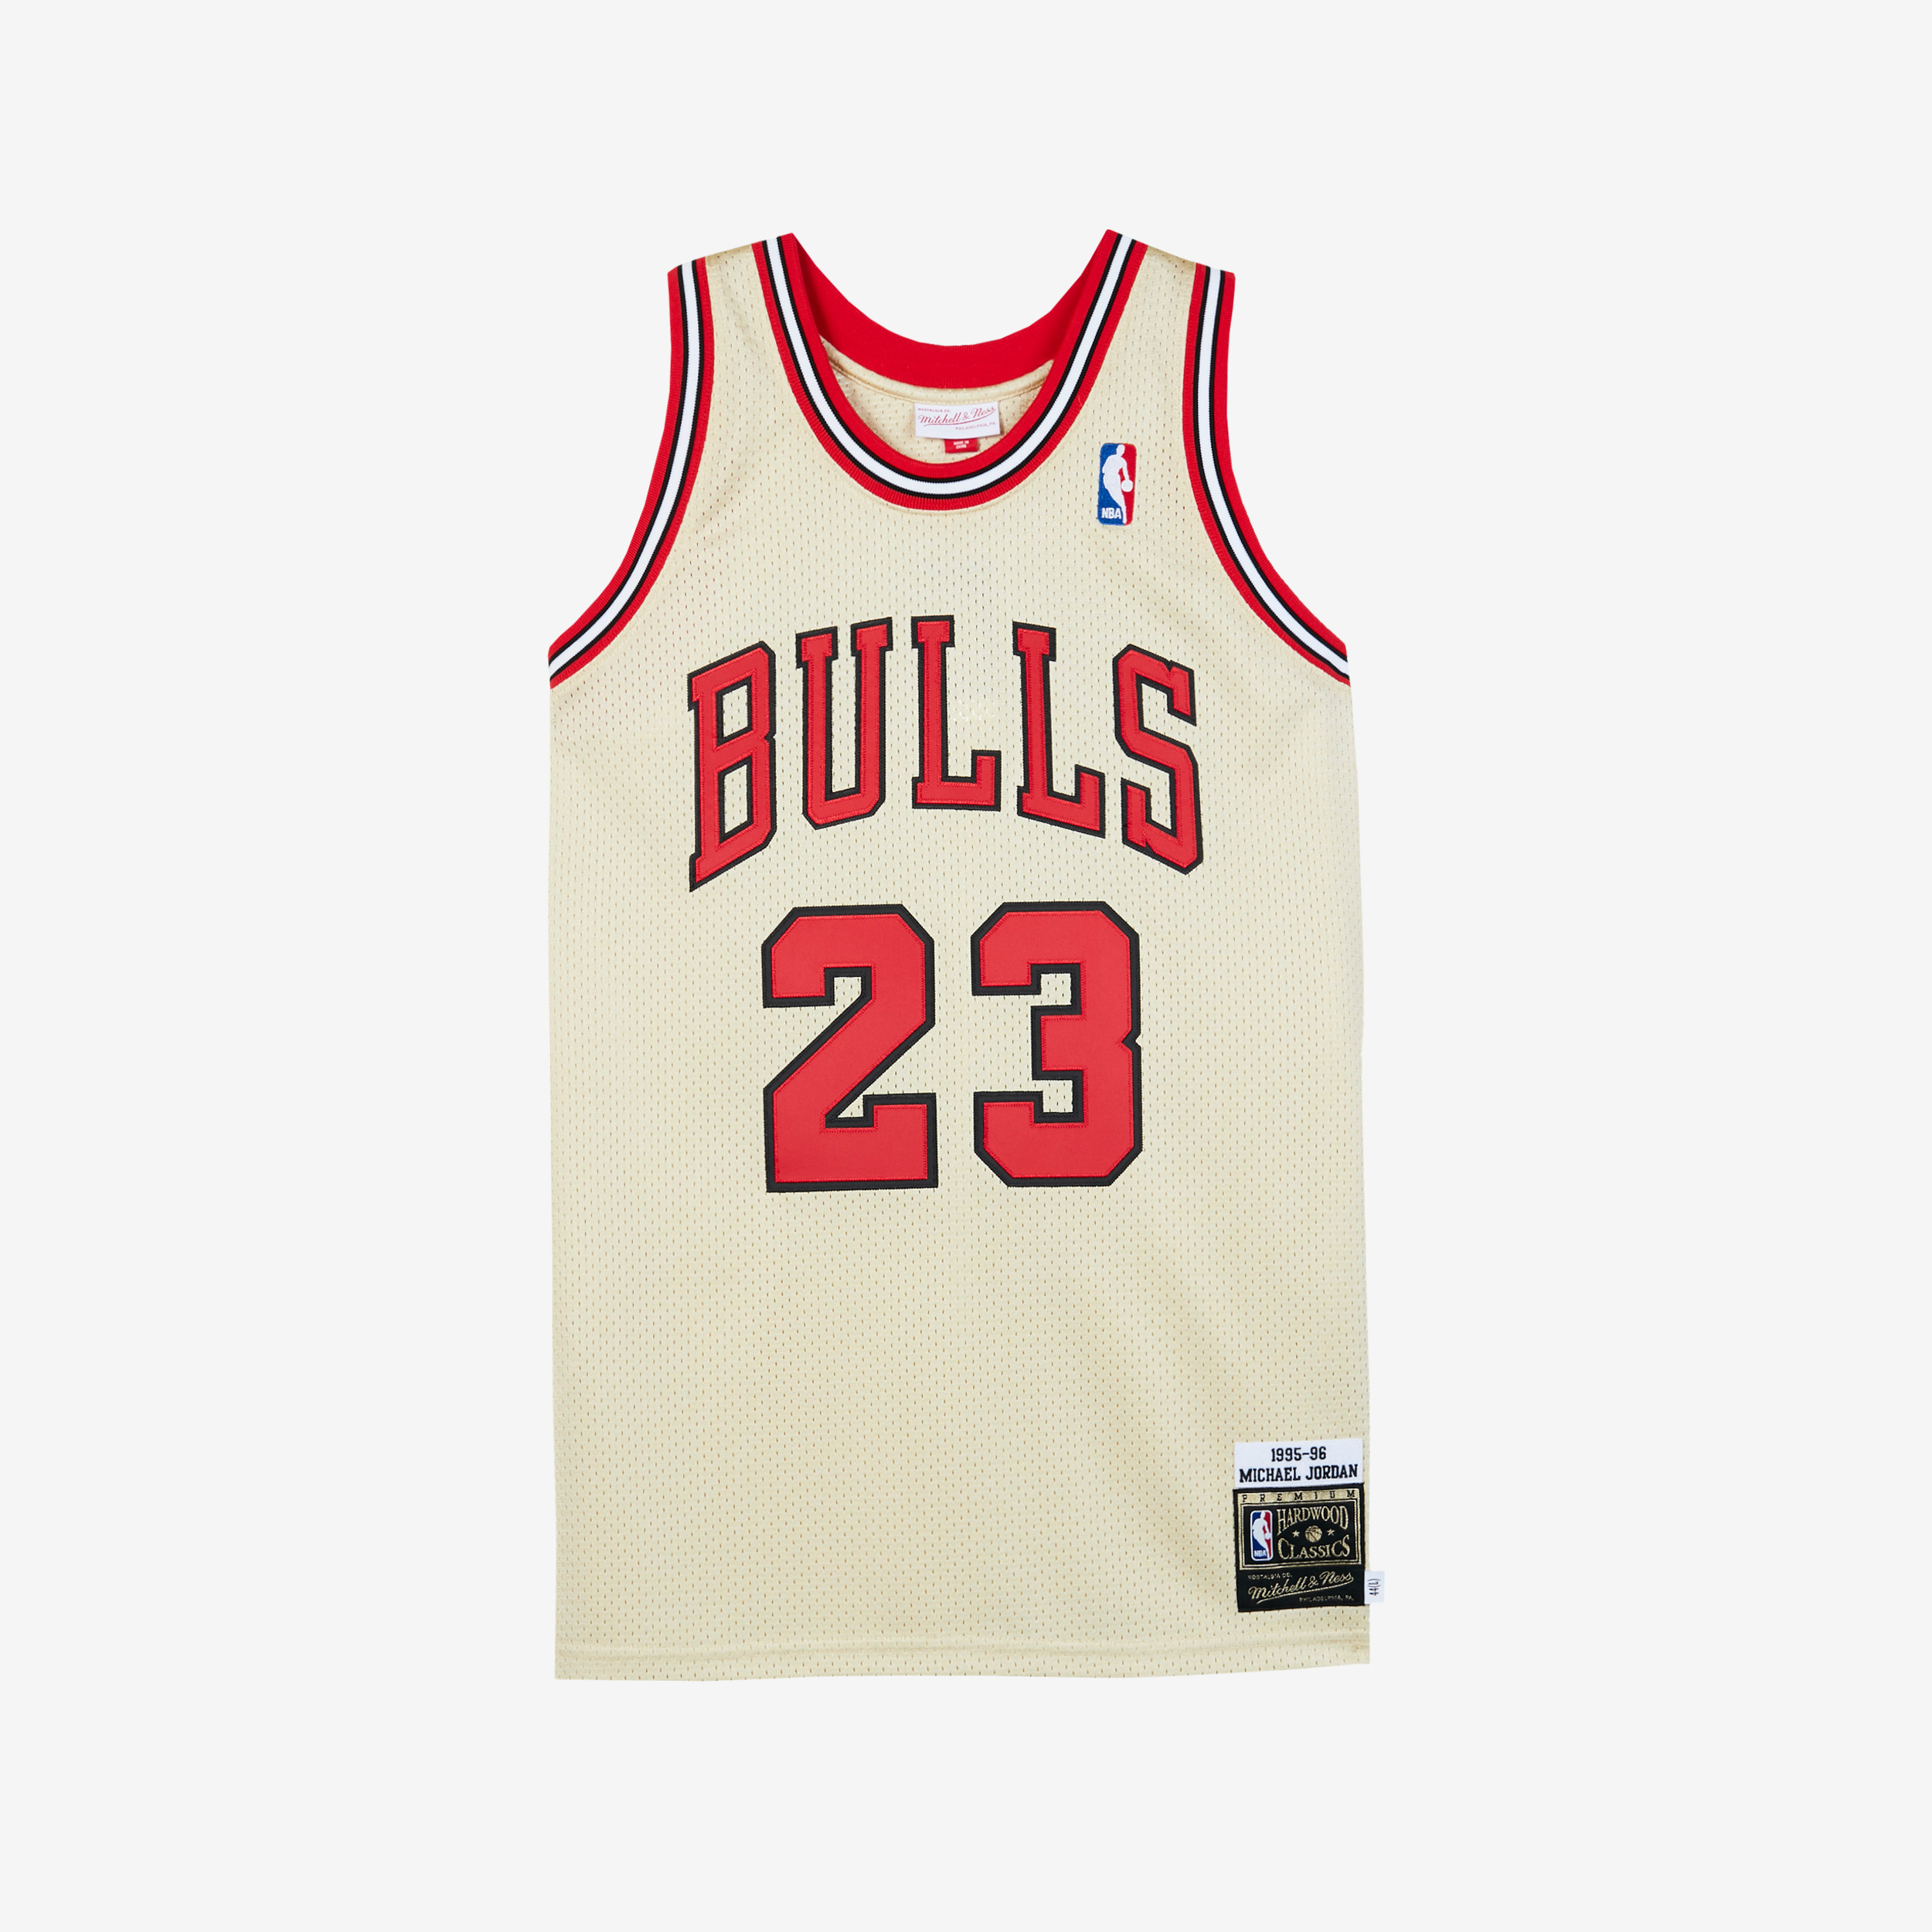 promo code 448b5 40398 Mitchell & Ness Gold Authentic Jersey - Michael Jordan ...